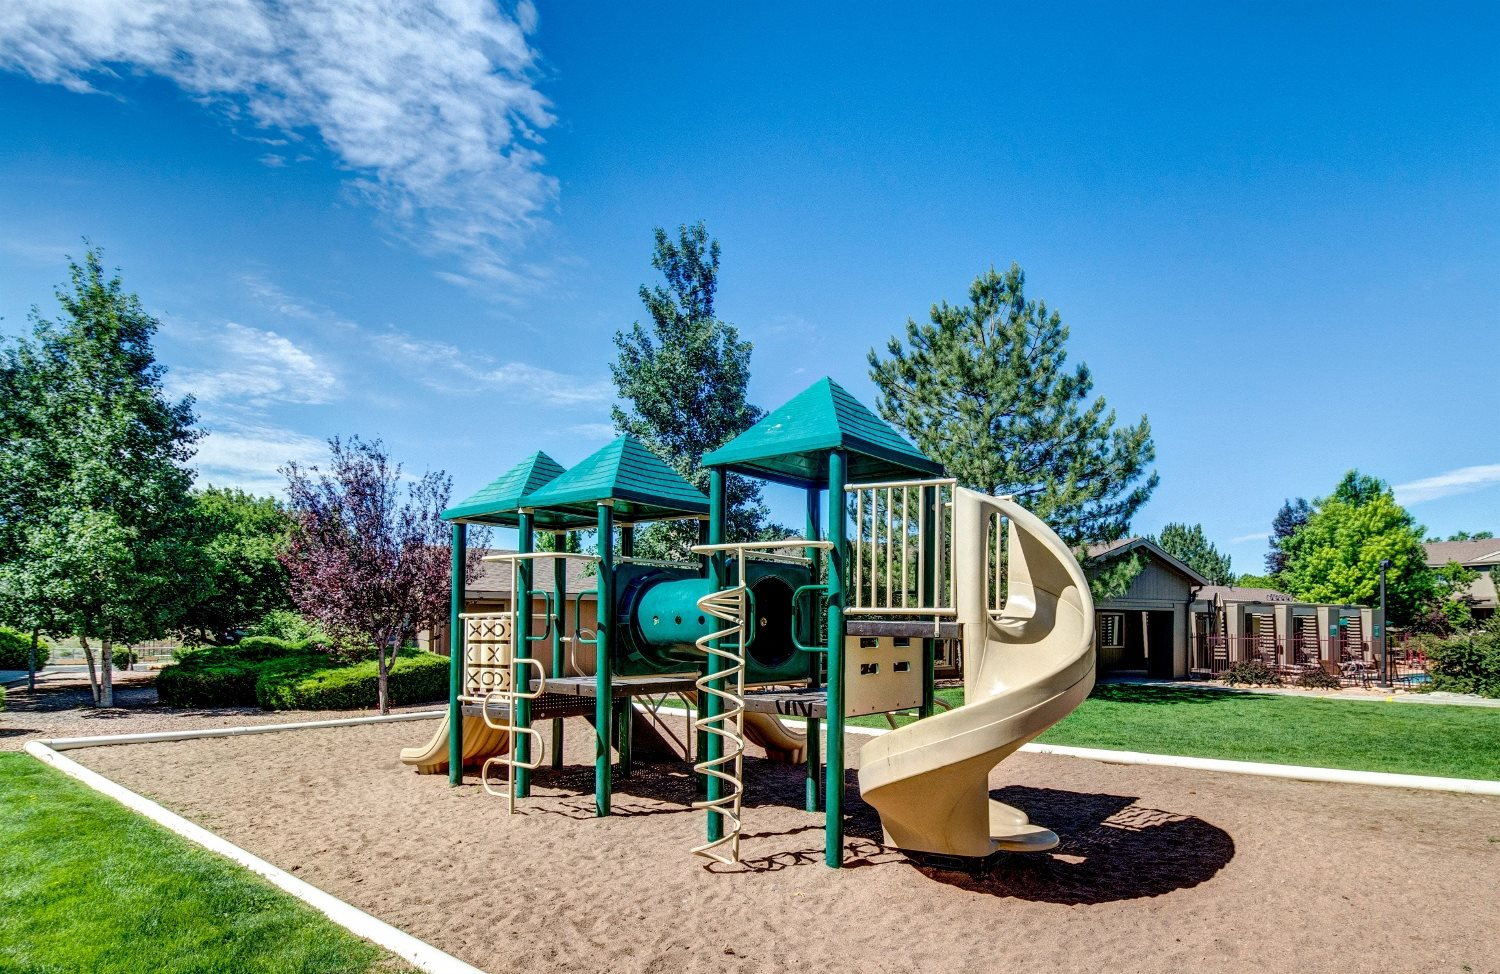 Playground at Country Club Terrace Apartments in Flagstaff, AZ